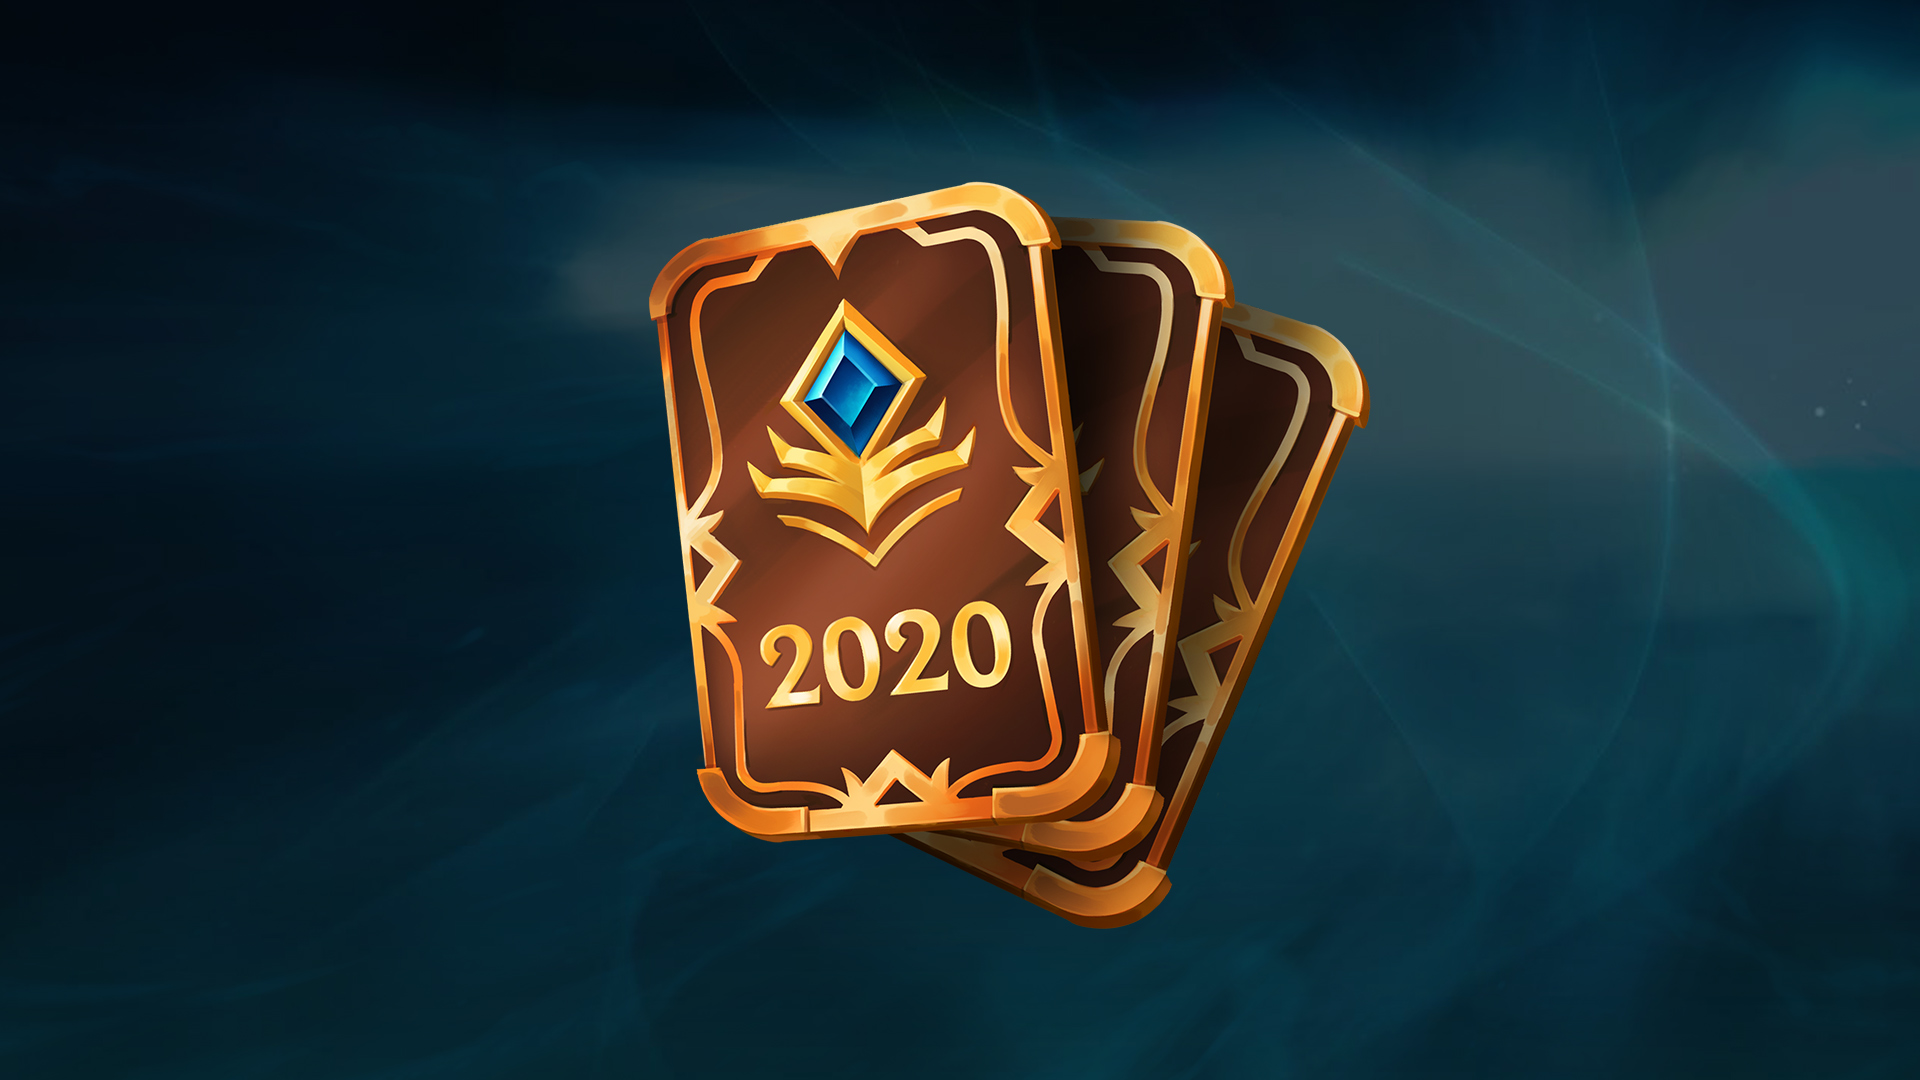 Ow Christmas Event 2020 Skins Prestige in the first half of 2020   League of Legends